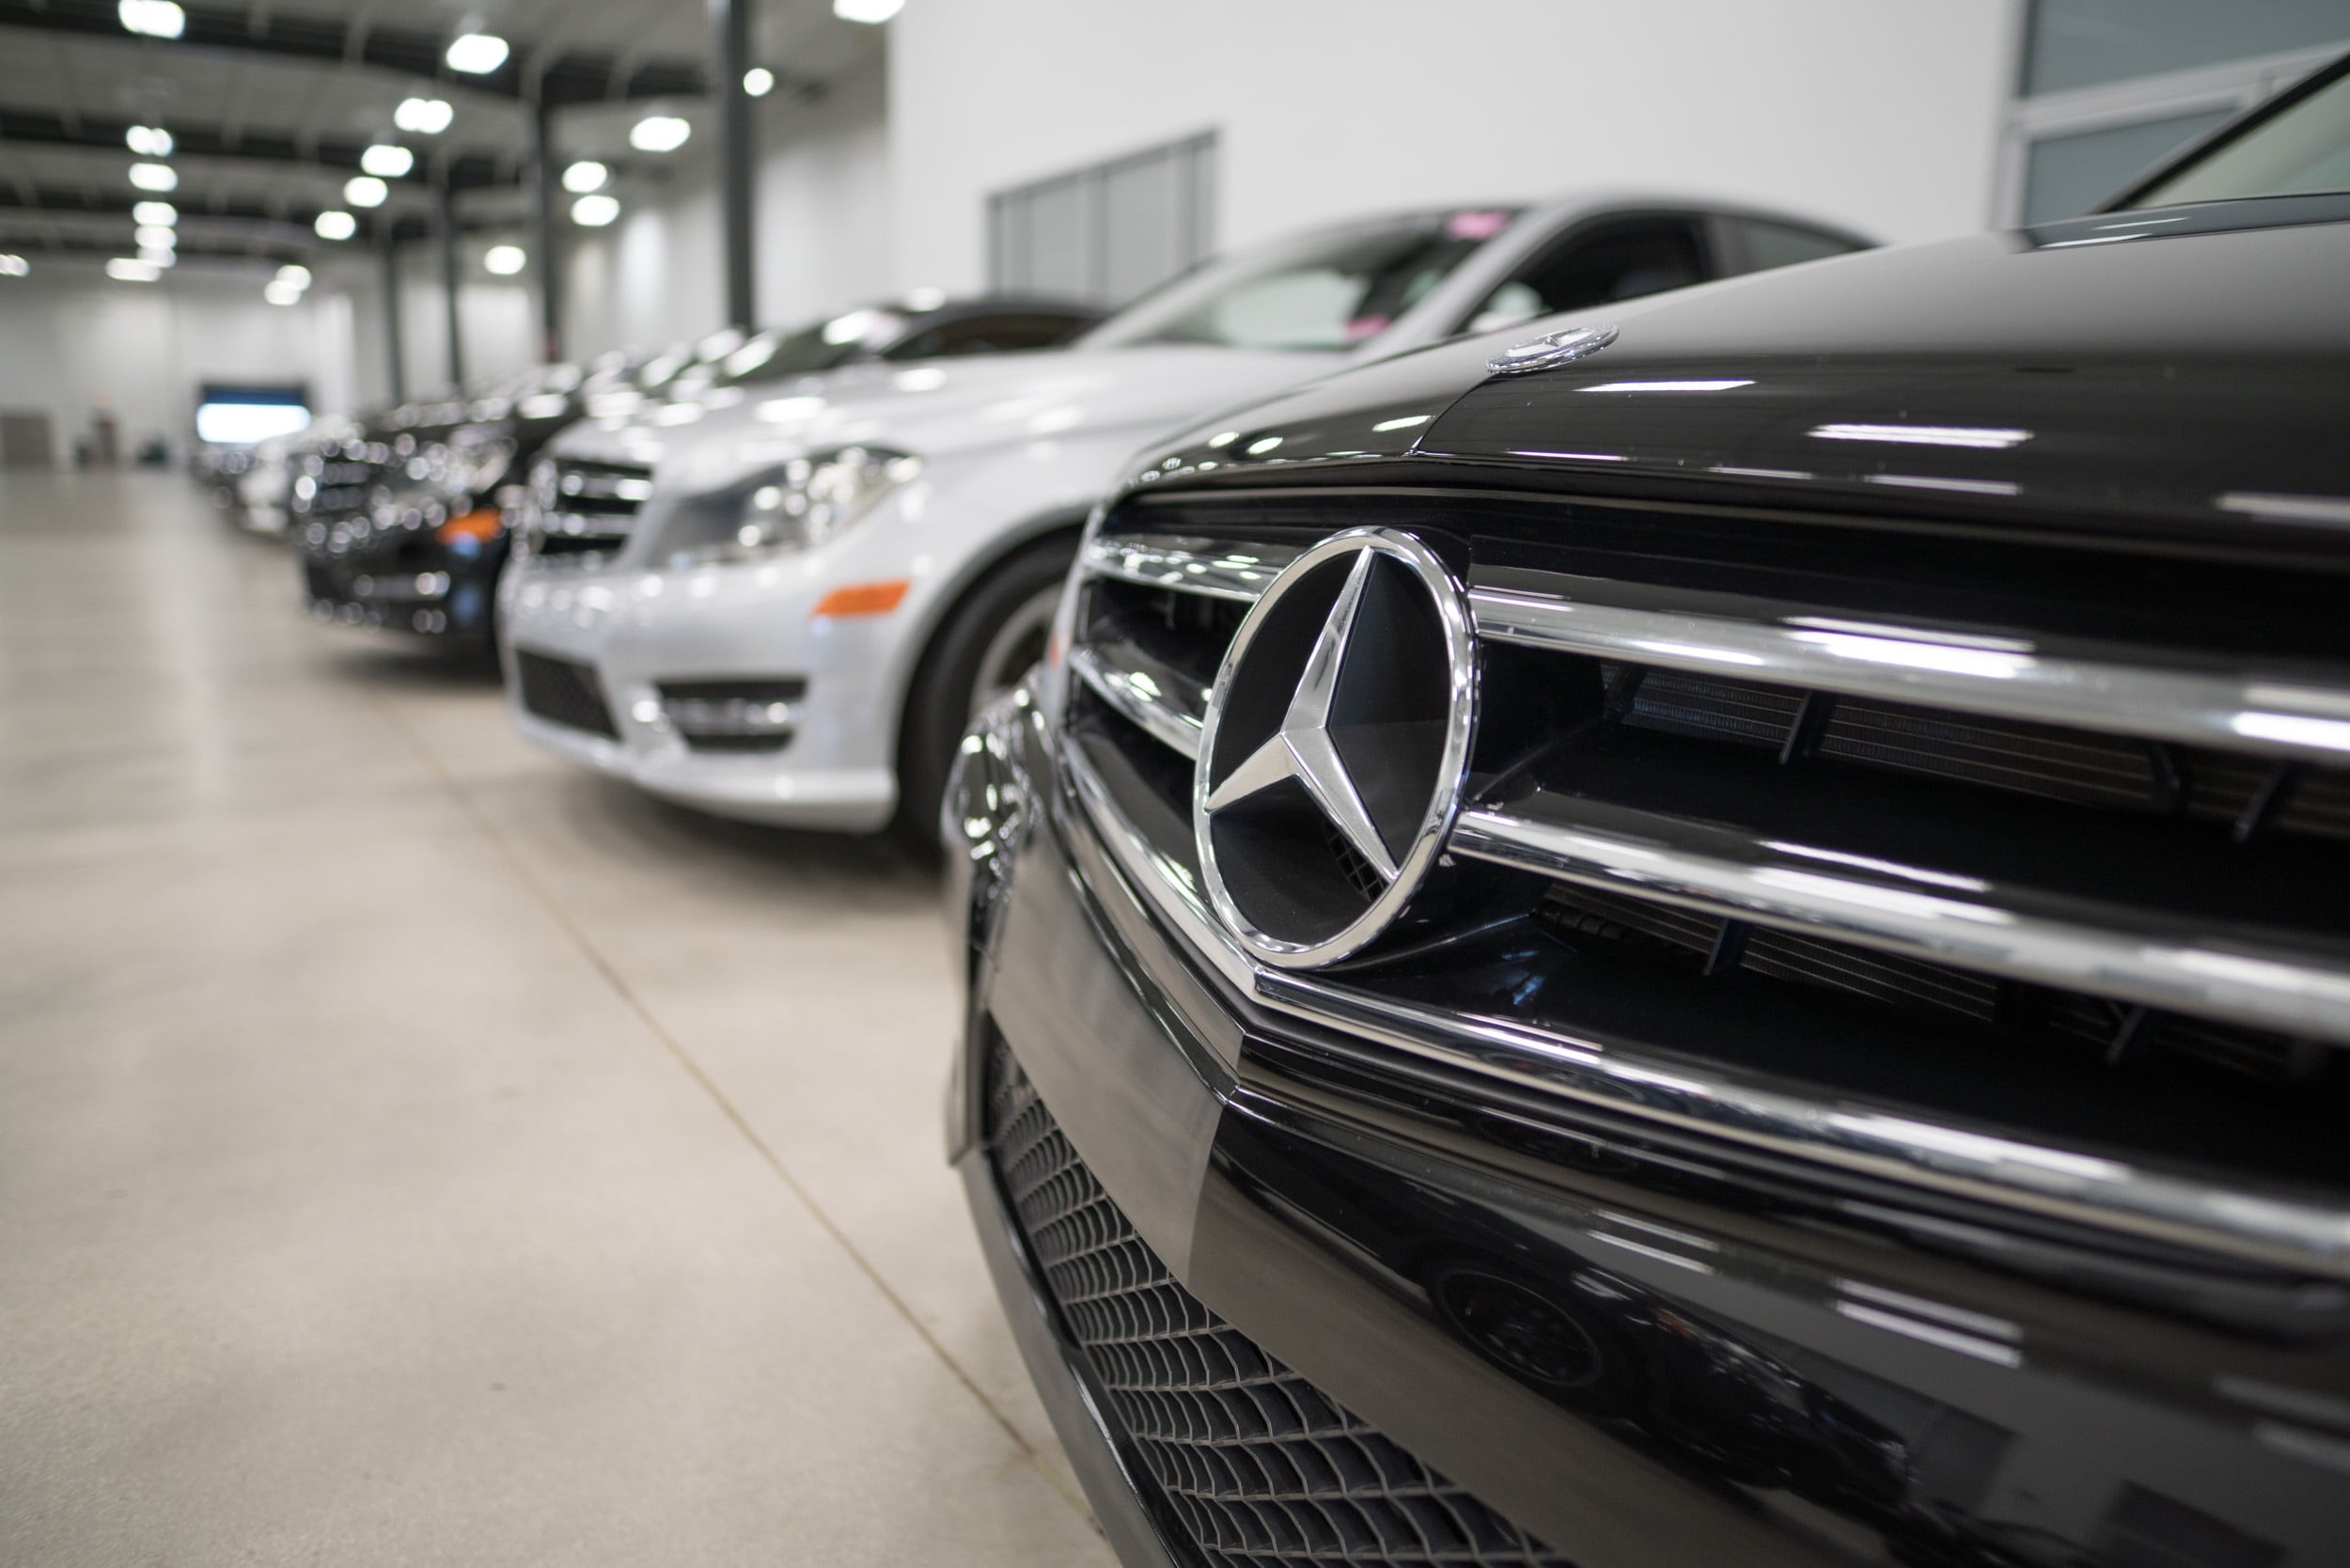 Mercedes Coconut Creek >> Mercedes-Benz Dealership Near Me Coconut Creek FL ...